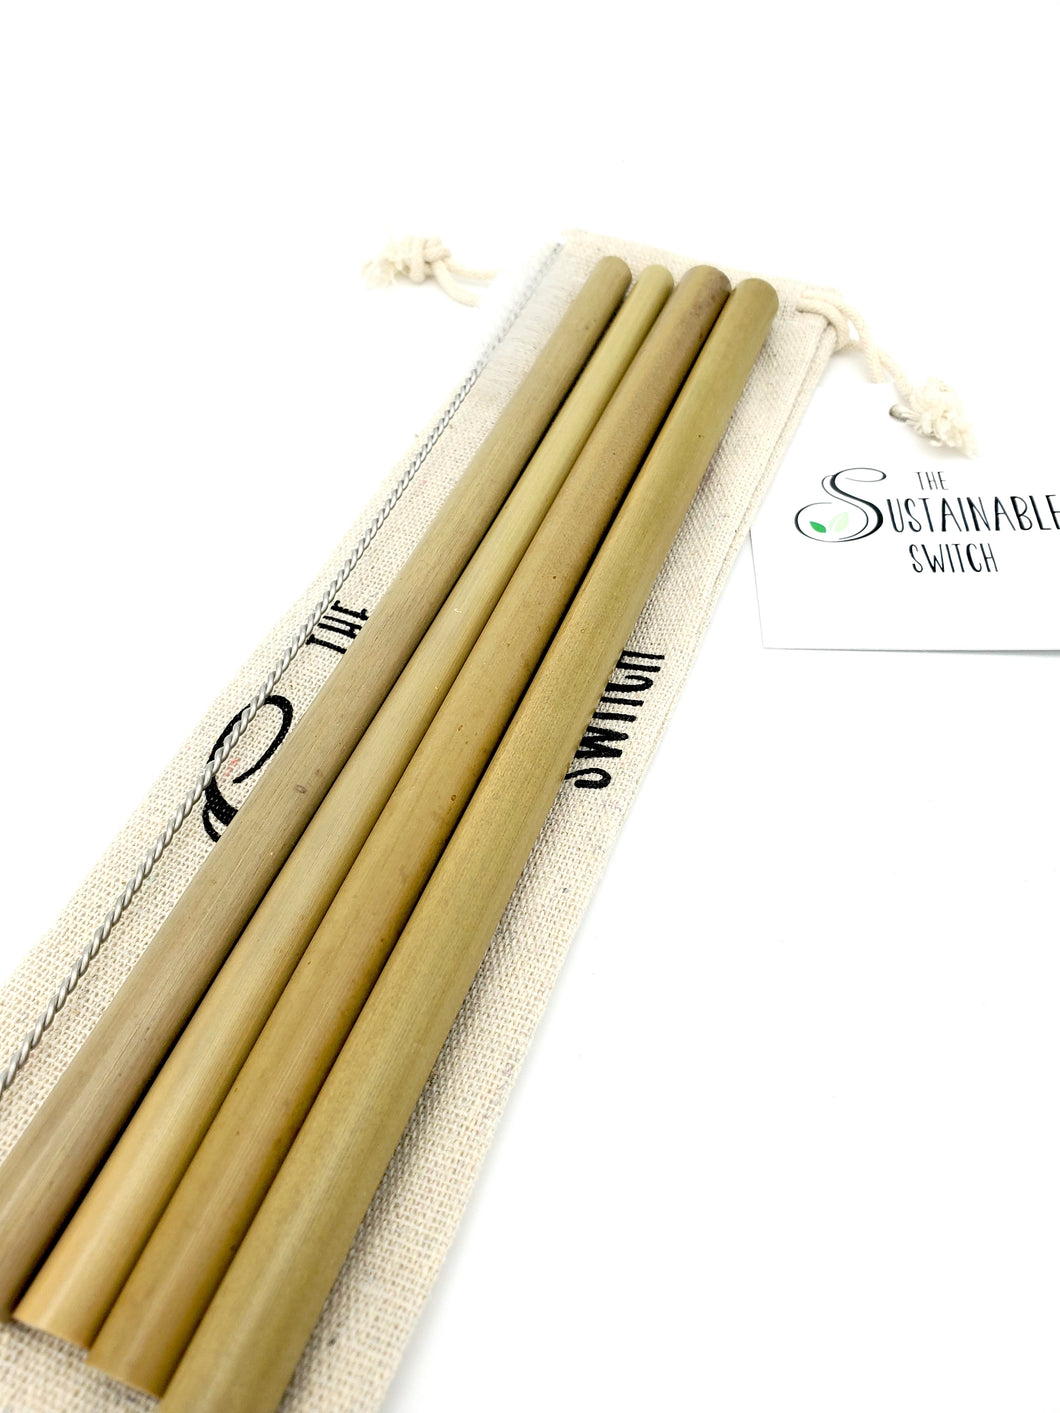 The Organic Bamboo Pack - The Sustainable Switch